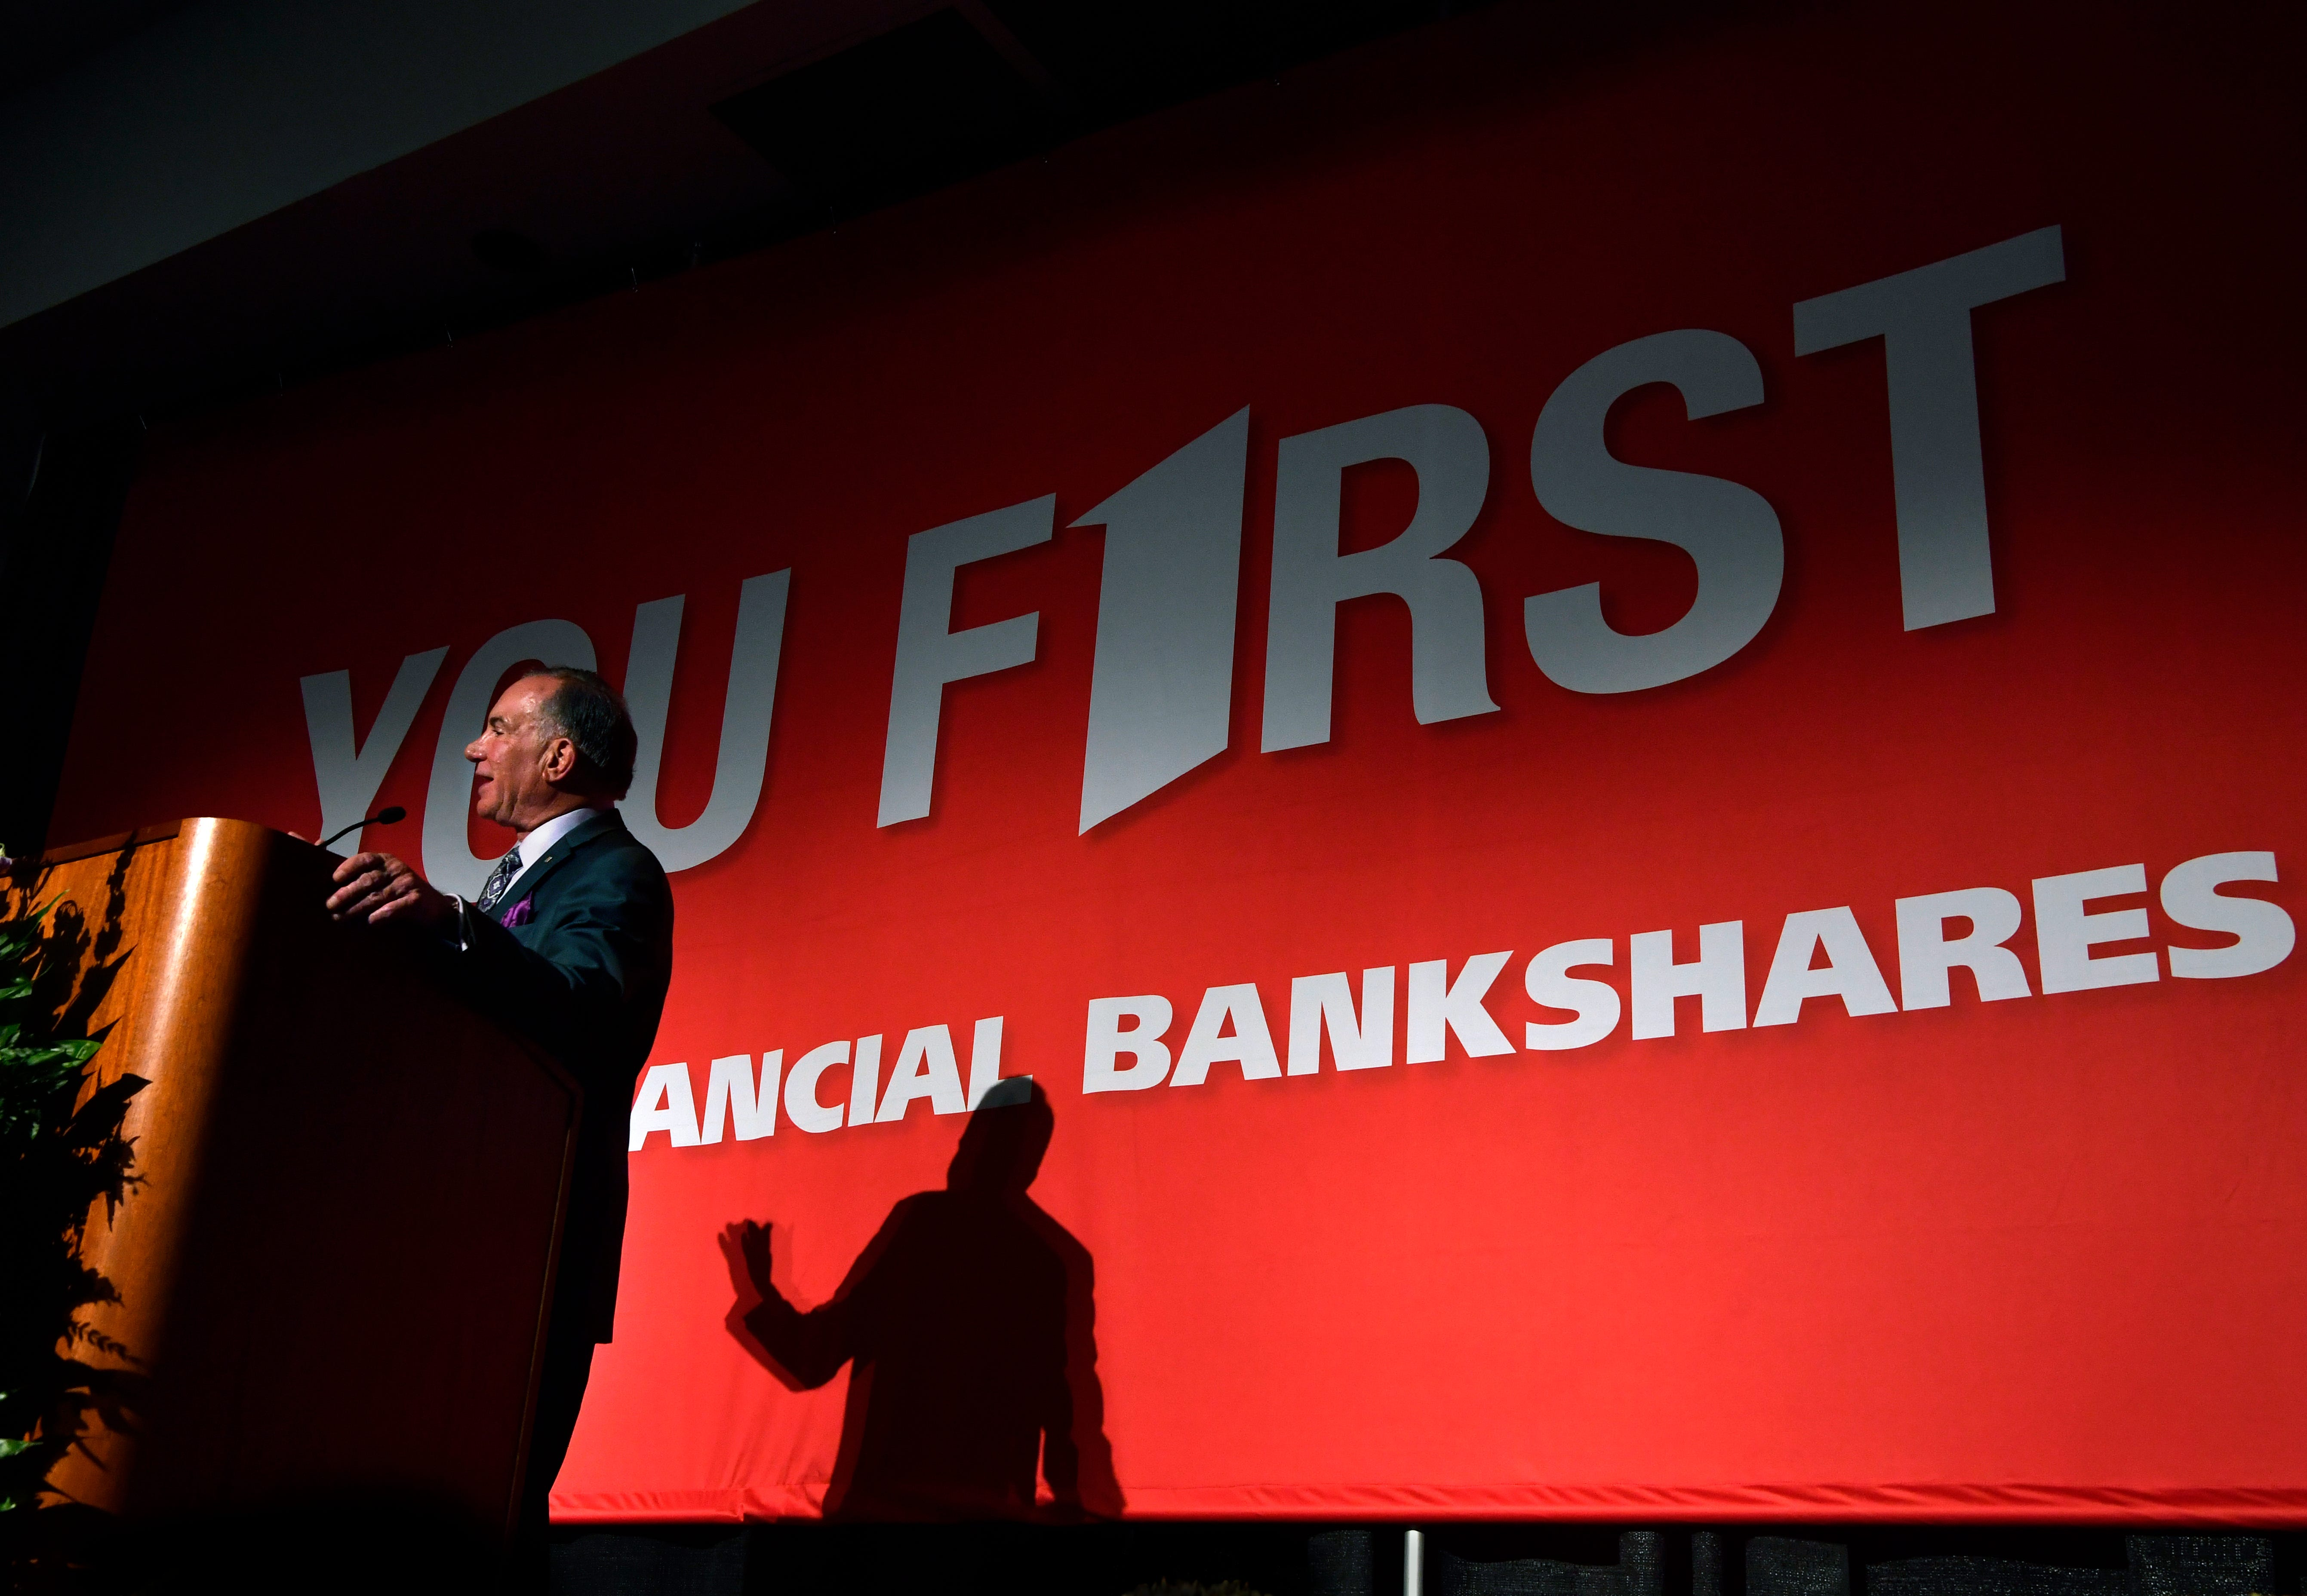 Scott Dueser announces the two-for-one stock split at the annual First Financial Bankshares annual shareholder meeting at the Abilene Convention Center. The split will be effective for shareholders of record May 15. Dueser is the bank's chairman, president and chief Executive Officer.